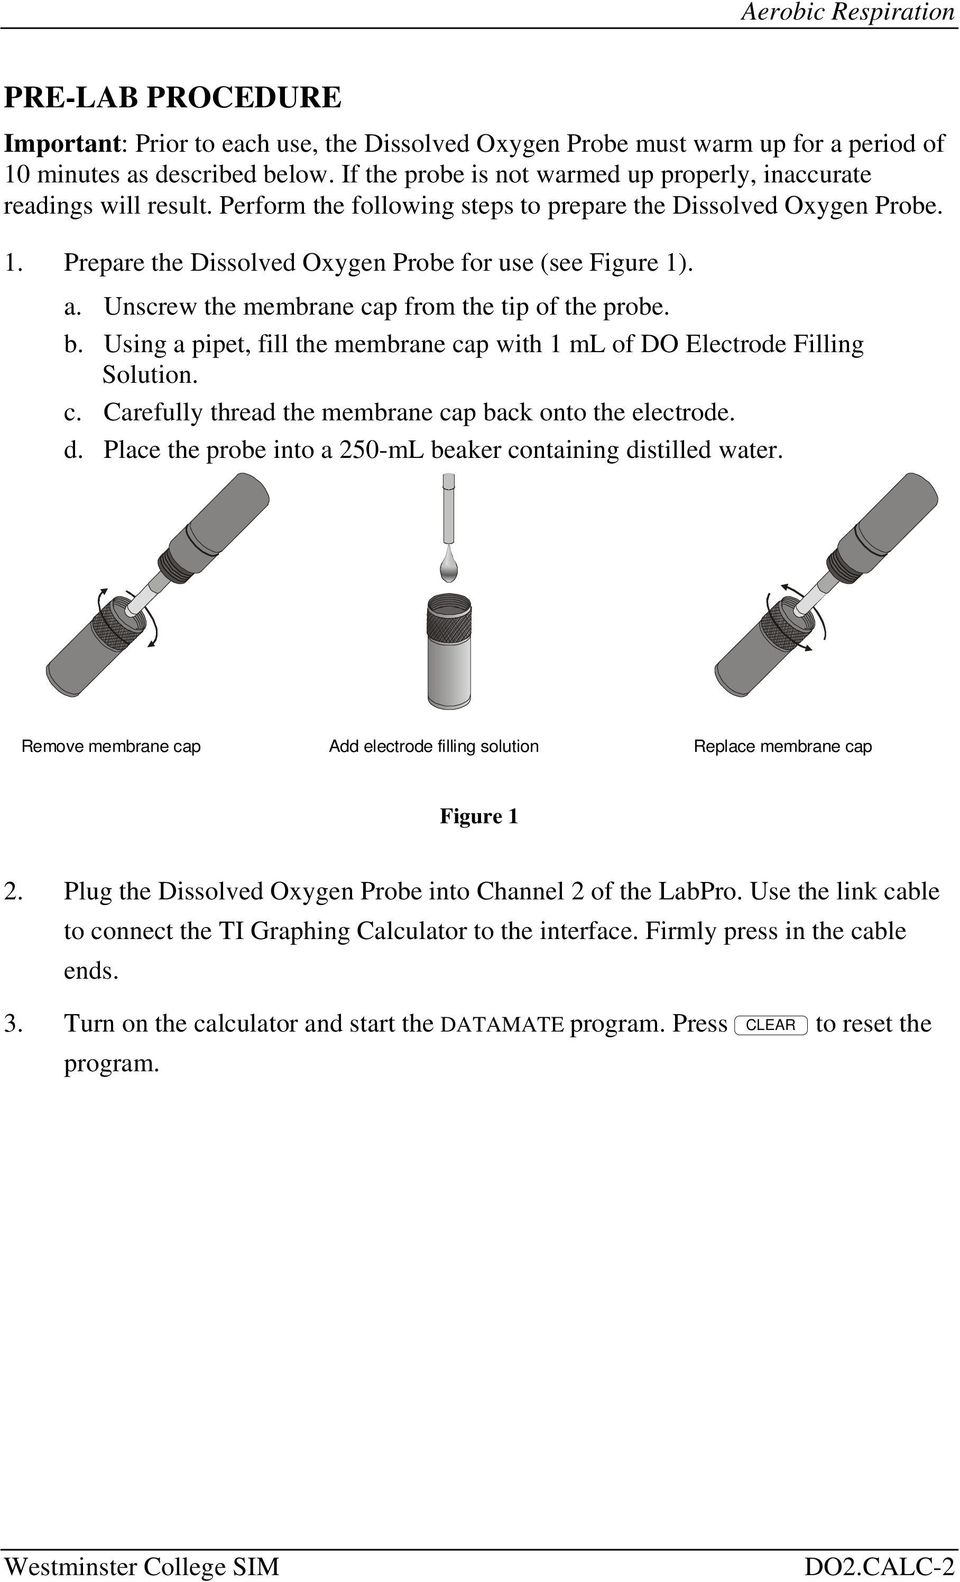 Prepare the Dissolved Oxygen Probe for use (see Figure 1). a. Unscrew the membrane cap from the tip of the probe. b. Using a pipet, fill the membrane cap with 1 ml of DO Electrode Filling Solution. c. Carefully thread the membrane cap back onto the electrode.